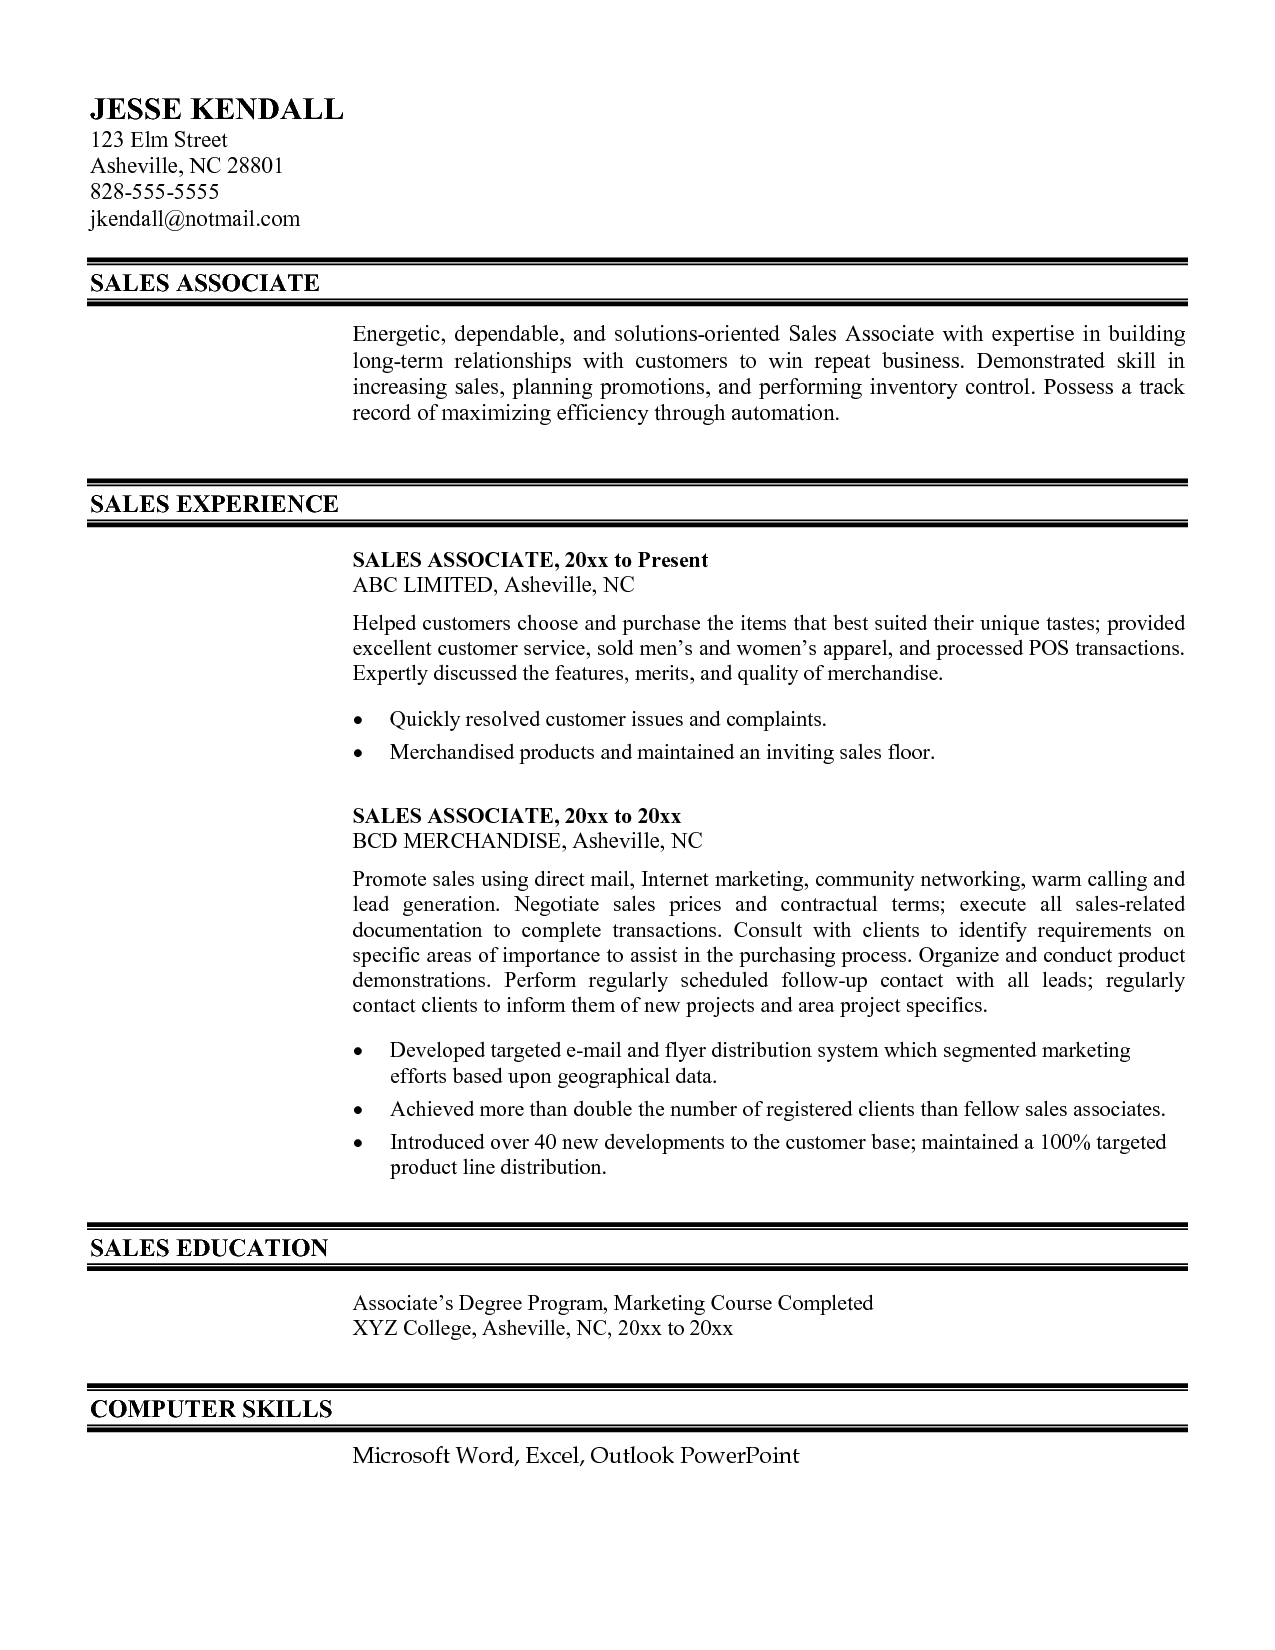 Wonderful Example Of Sales Associate Resume Retail Sales Associate Sample Resume  Resume Cv Cover Letter. Inside Sample Resume For Sales Associate